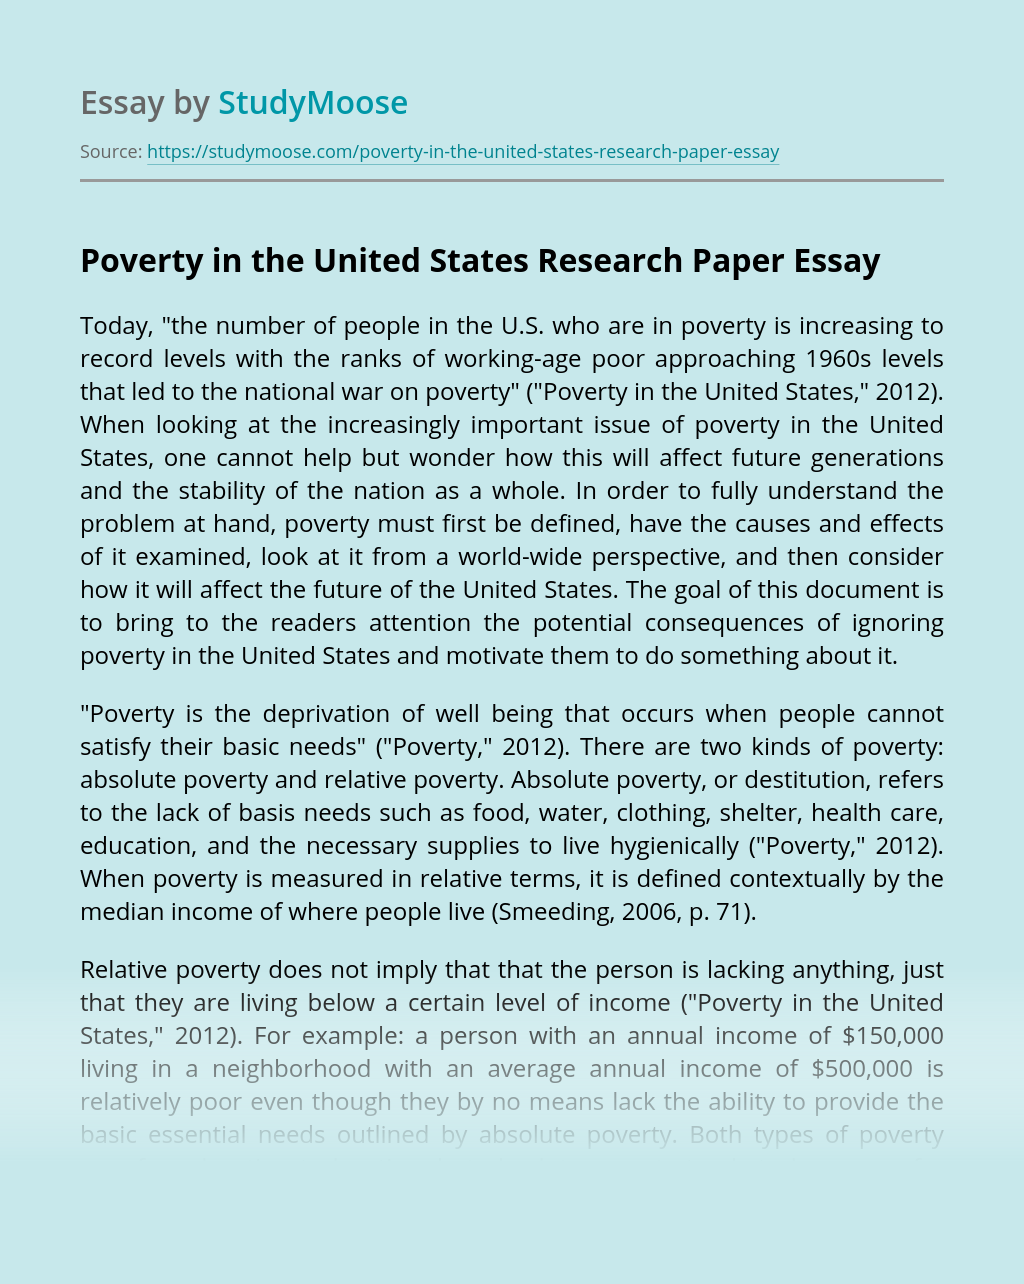 Poverty in the United States Research Paper